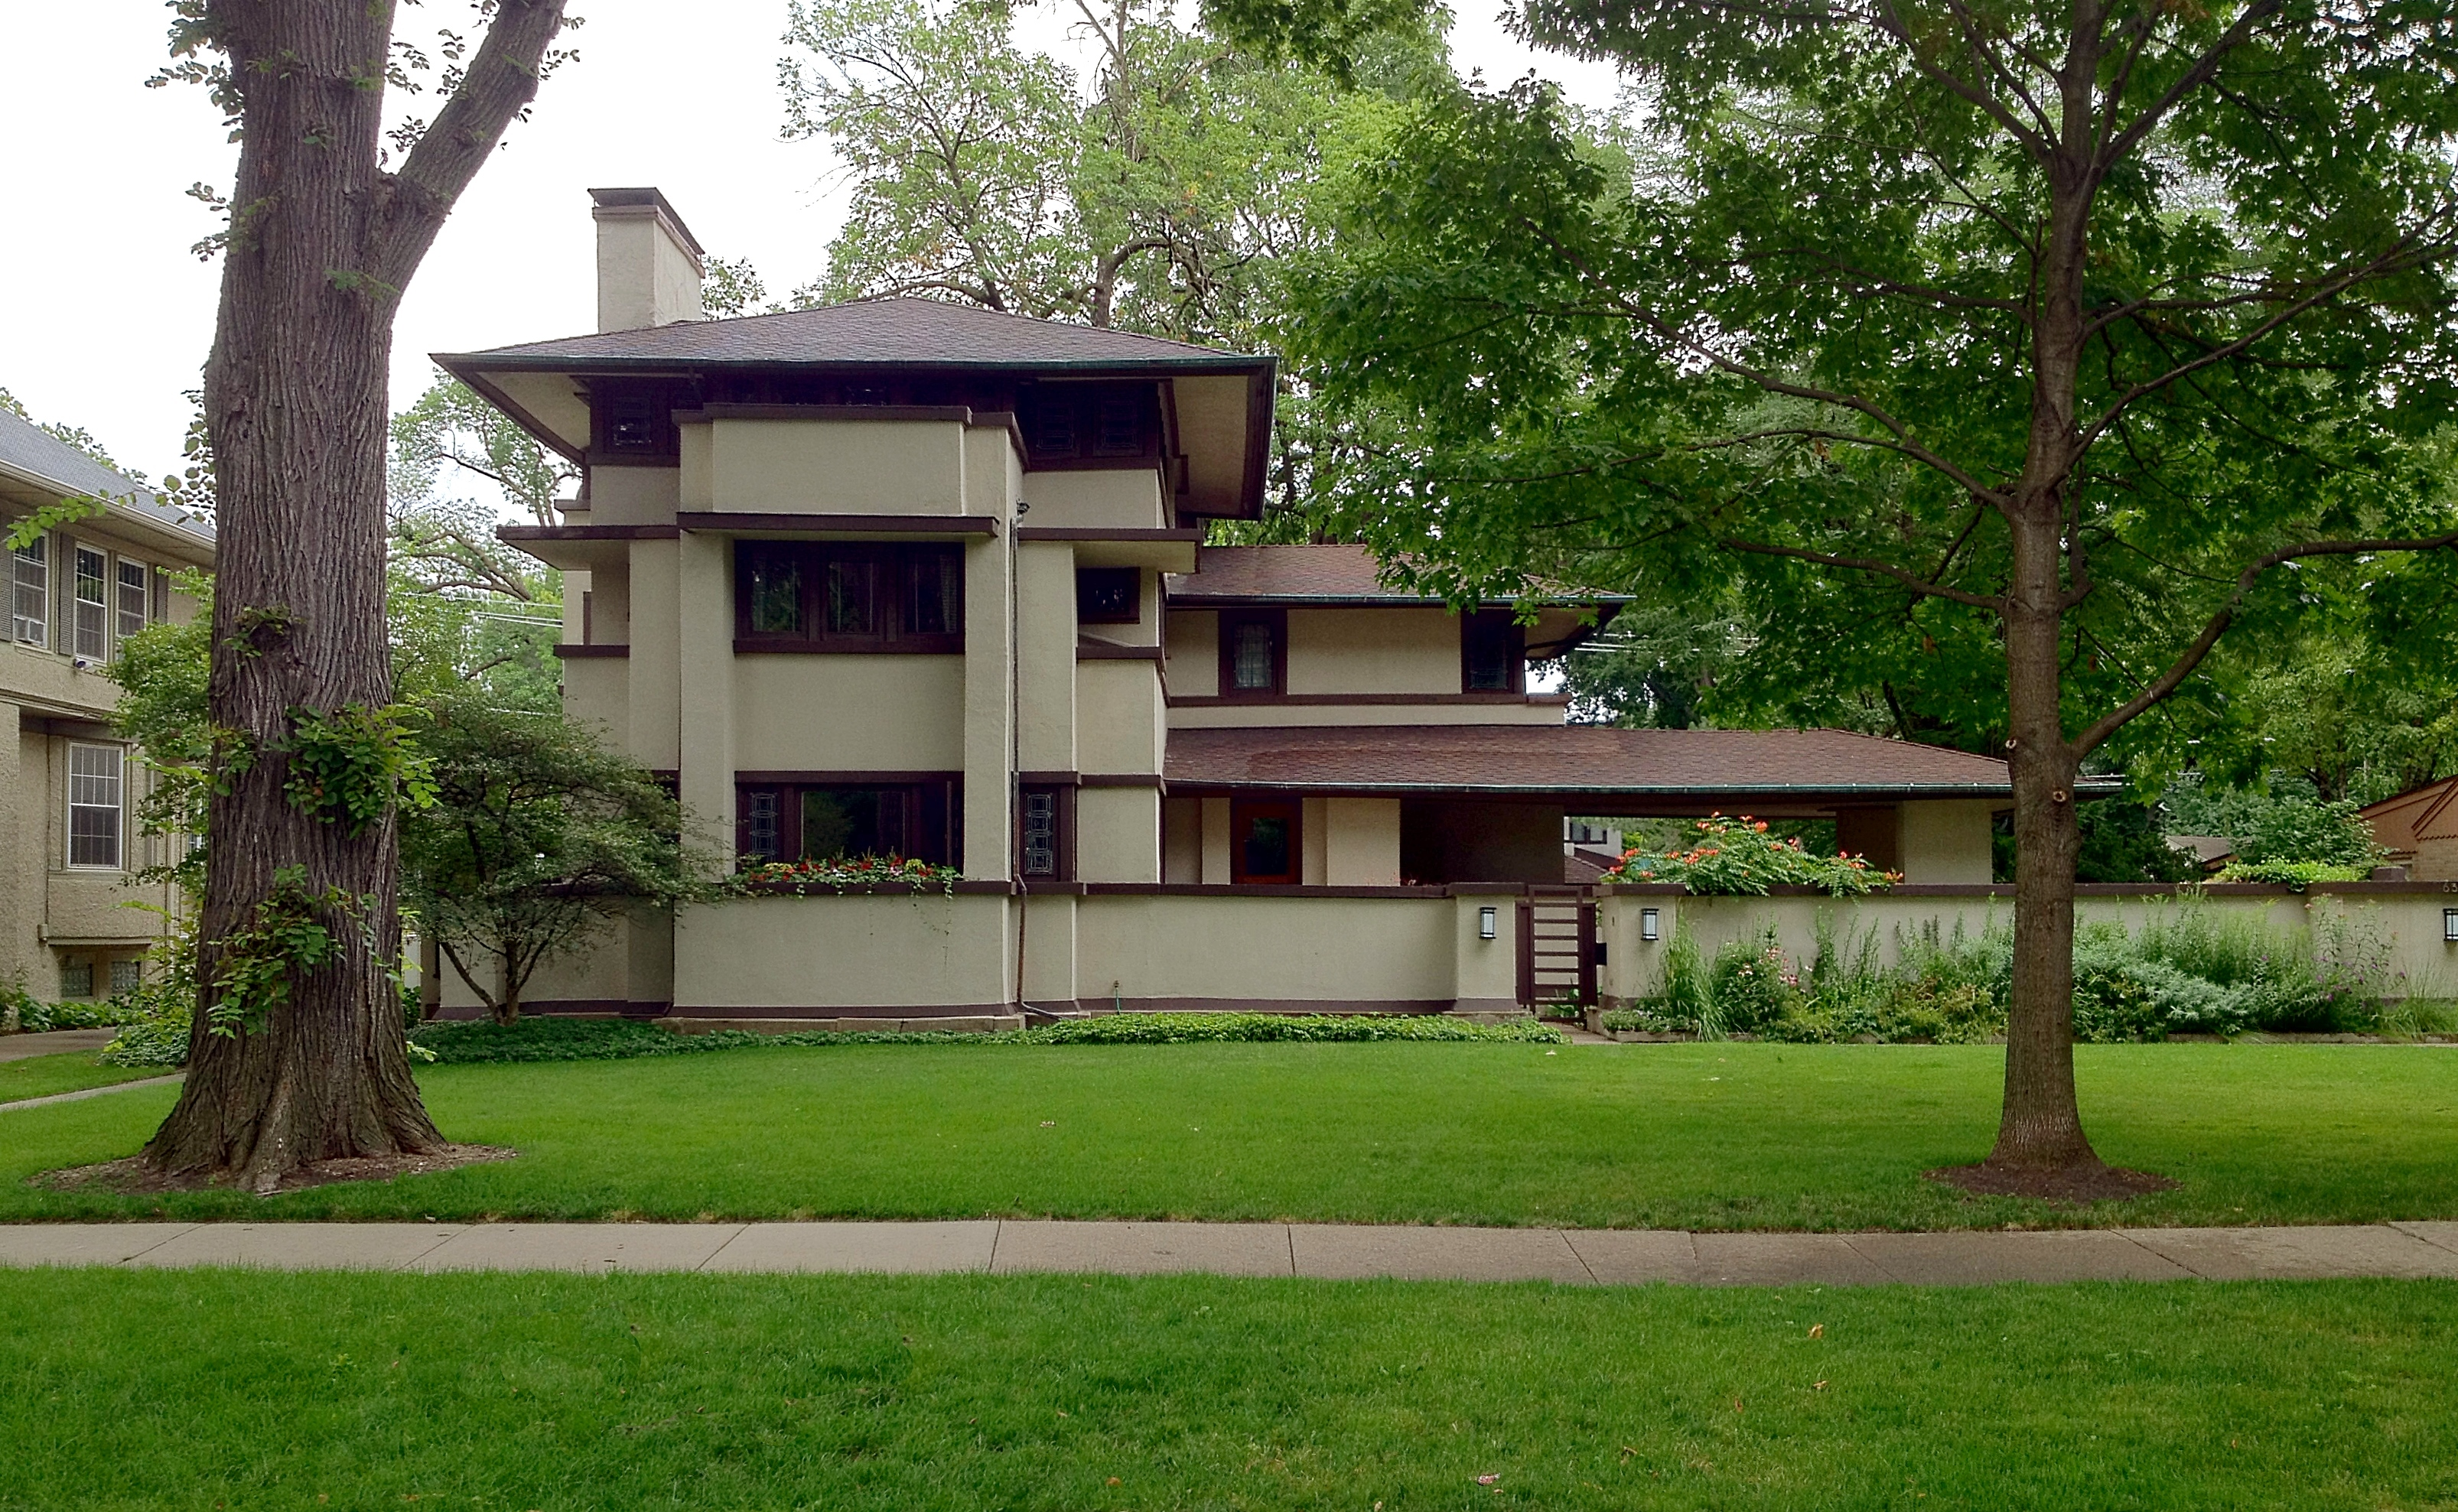 Frank lloyd wright s oak park illinois designs the for Prairie style house plans